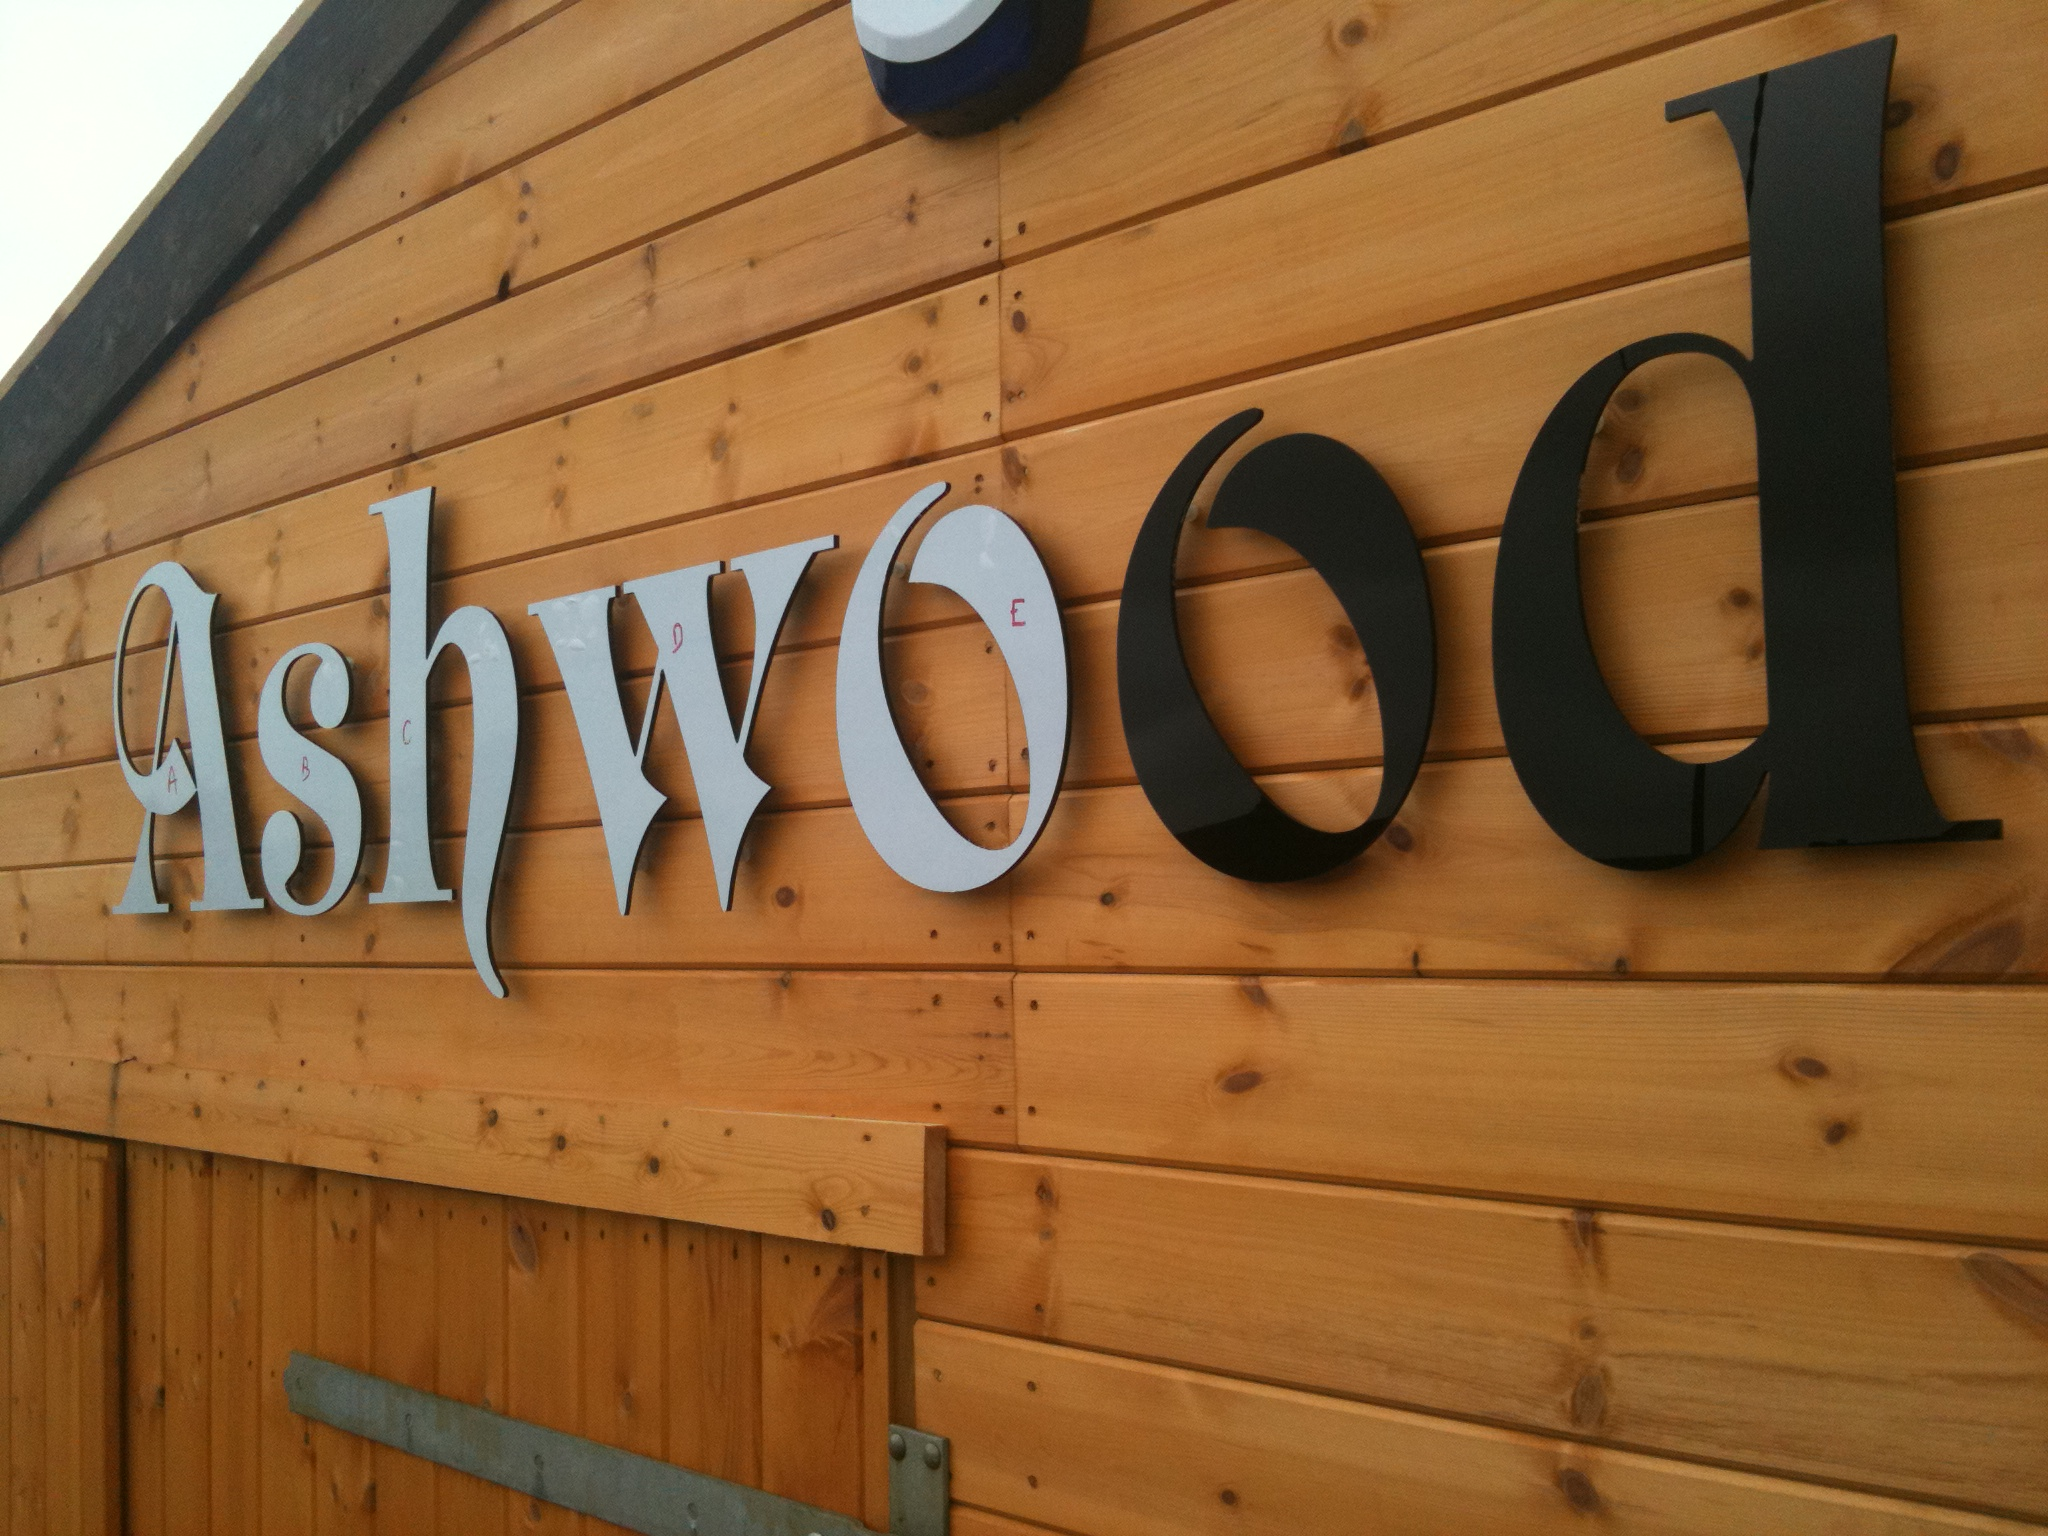 Ashwood Sign